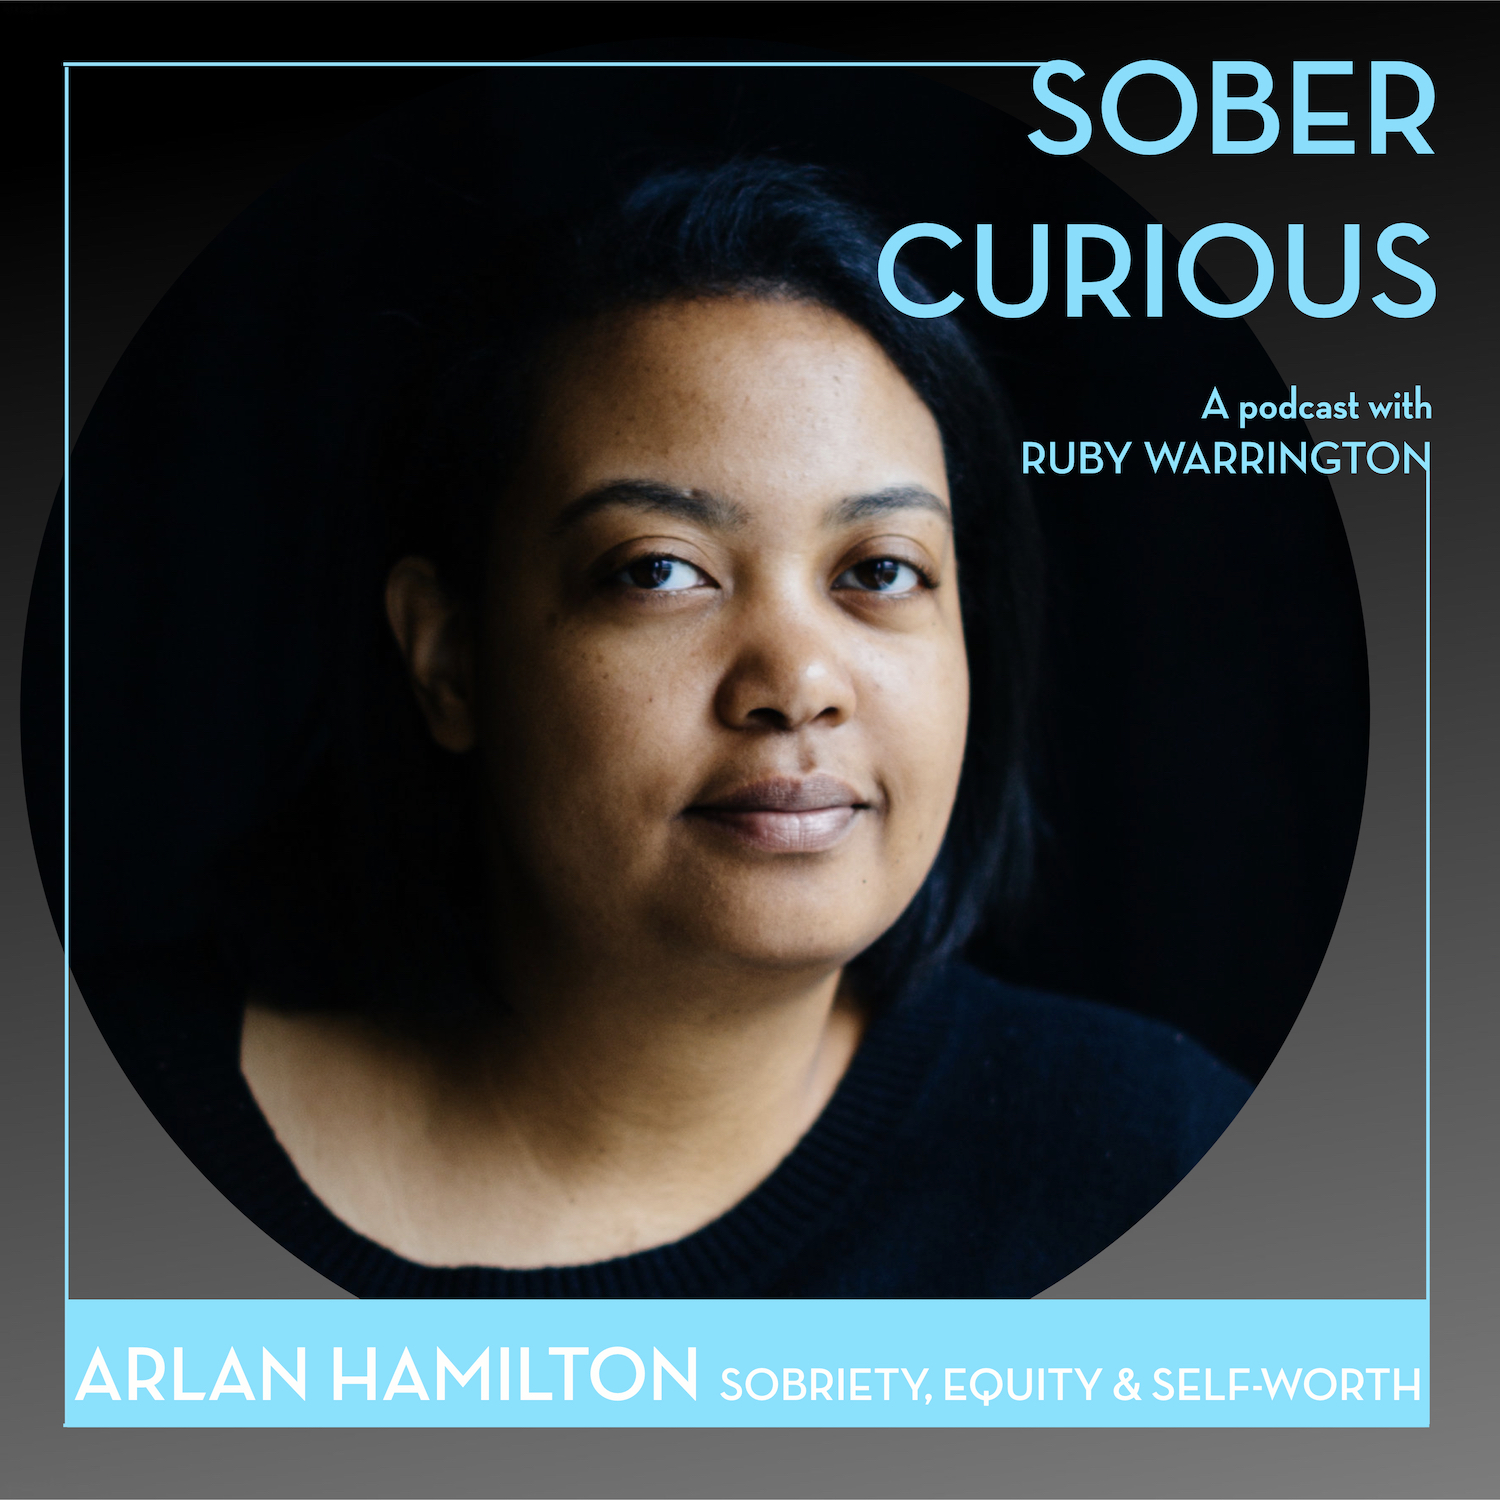 Arlan Hamilton Sober Curious podcast Ruby Warrington Backstage Capital